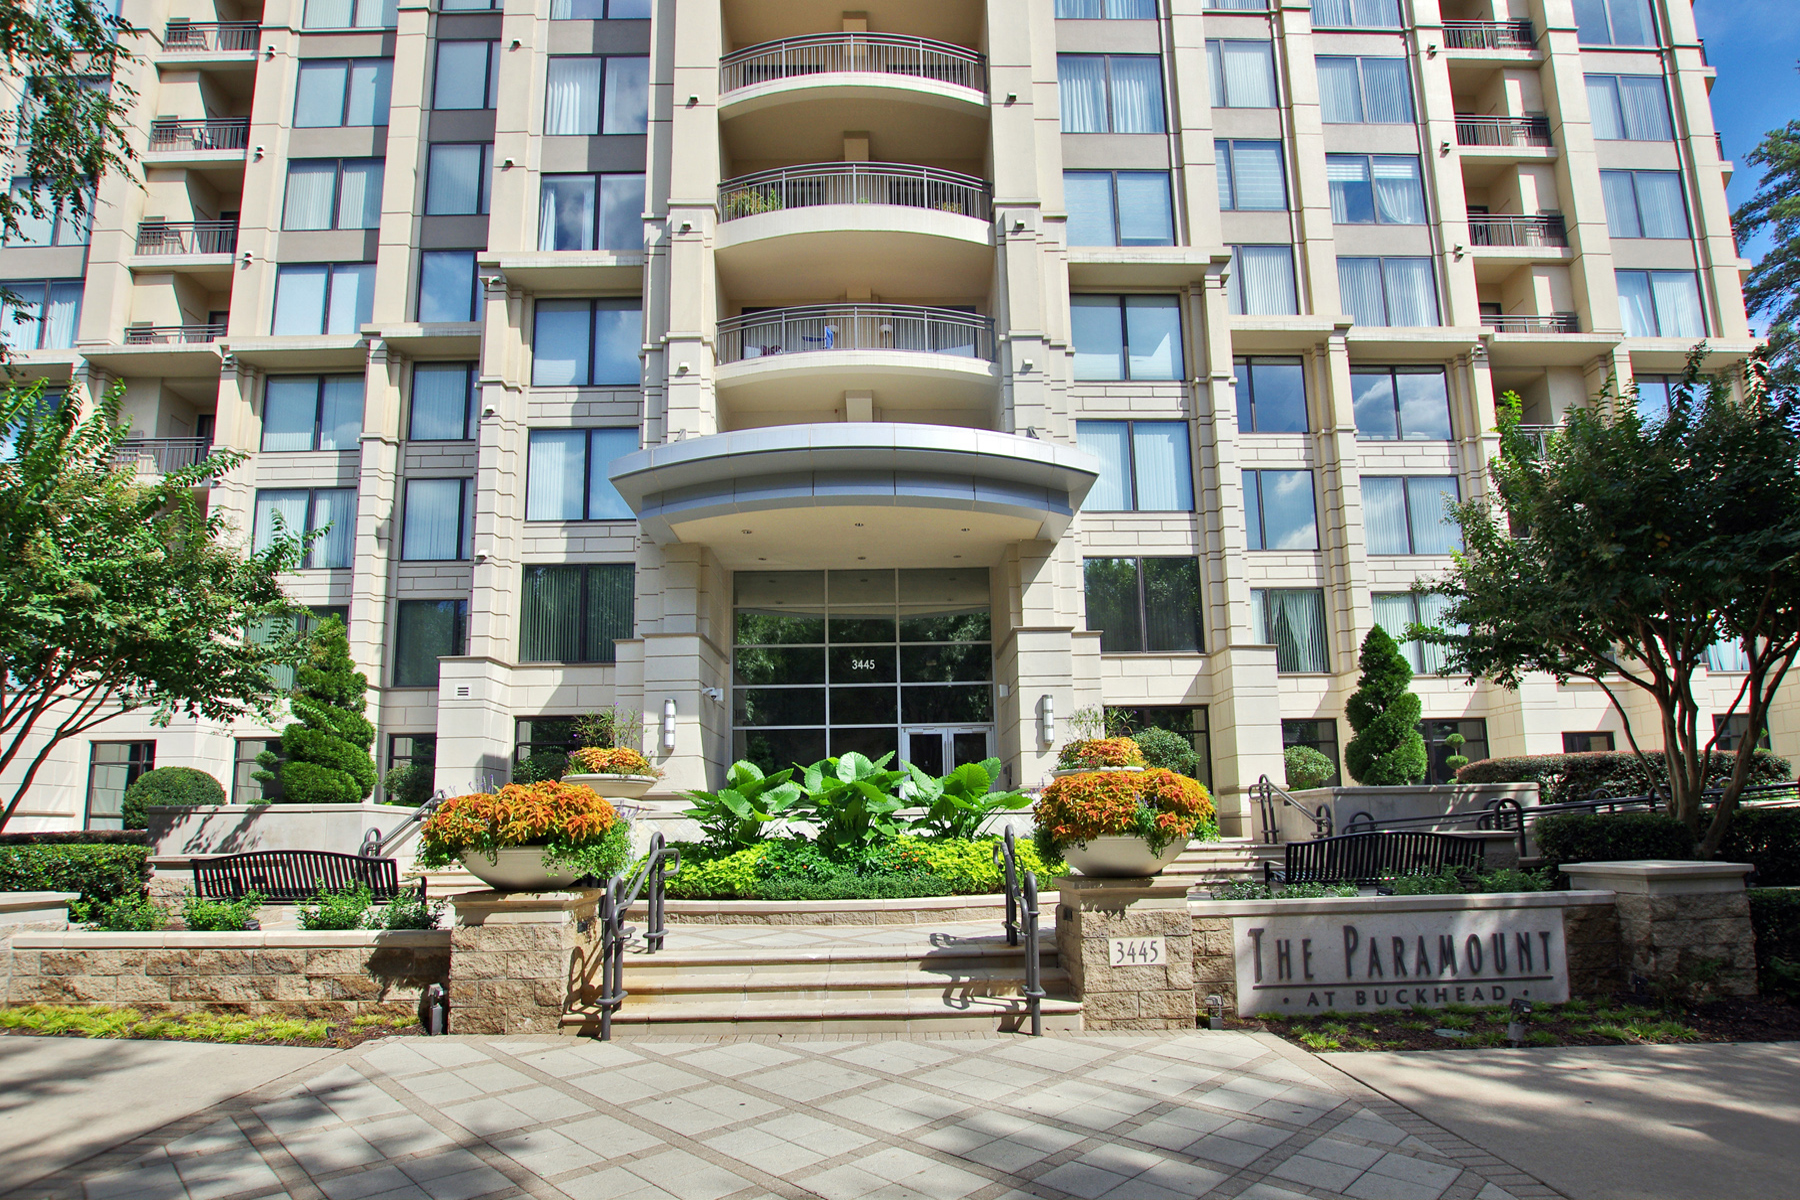 Condominium for Sale at Spectacular Light Filled Corner Unit With Breathtaking Views Of Buckhead 3445 Stratford Road NE No. 1003 Atlanta, Georgia 30326 United States